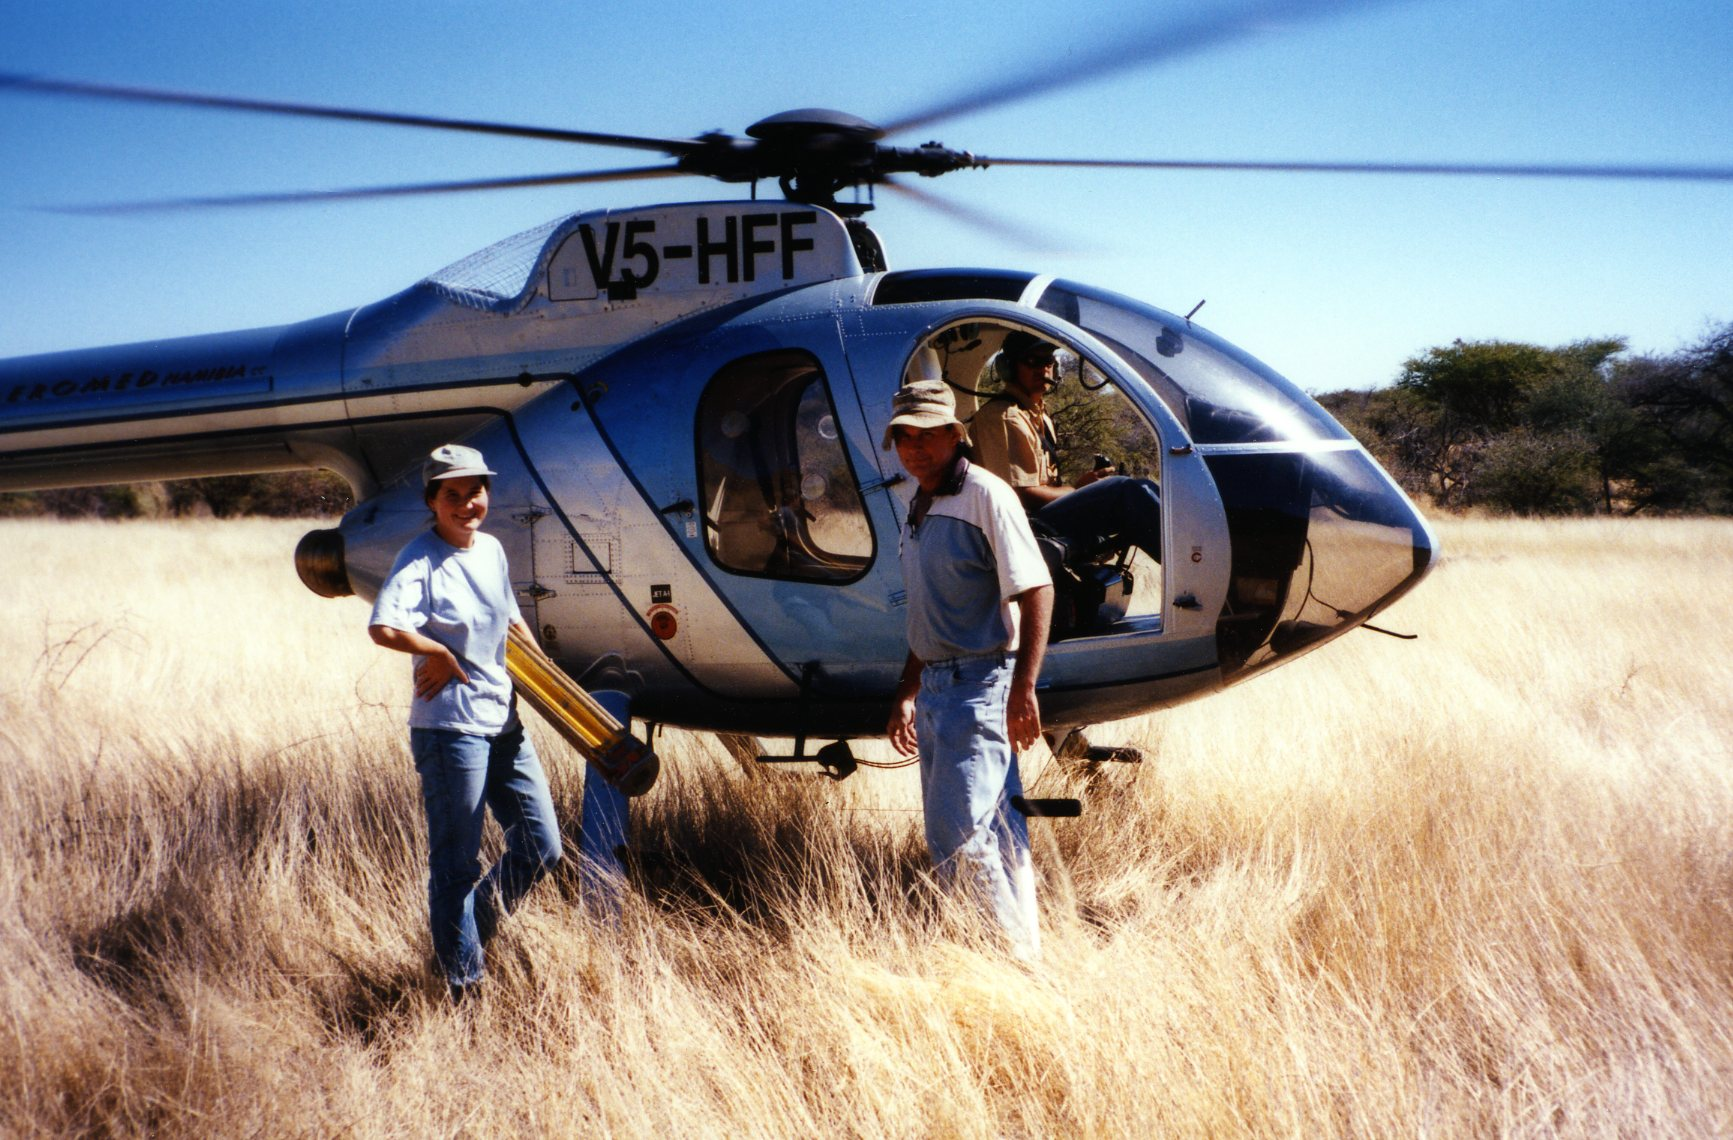 surveying in Namibia with the help of a helicopter